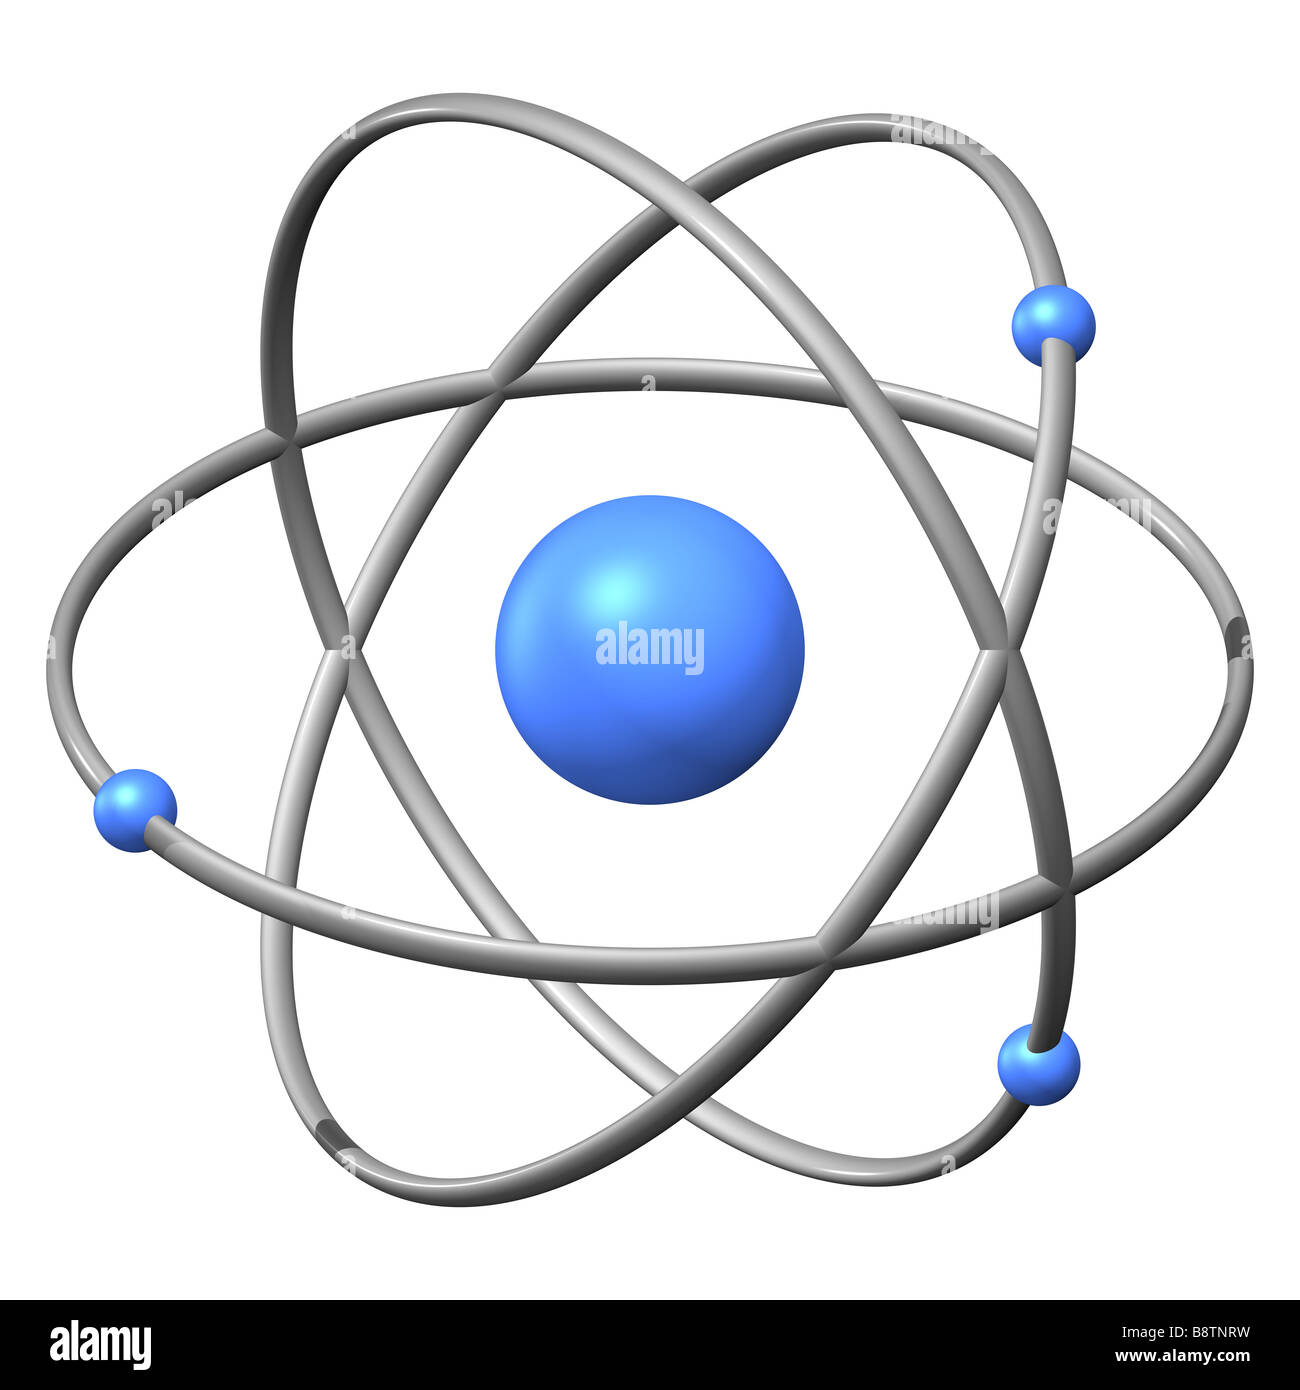 hight resolution of 3d model of an atom against a white background